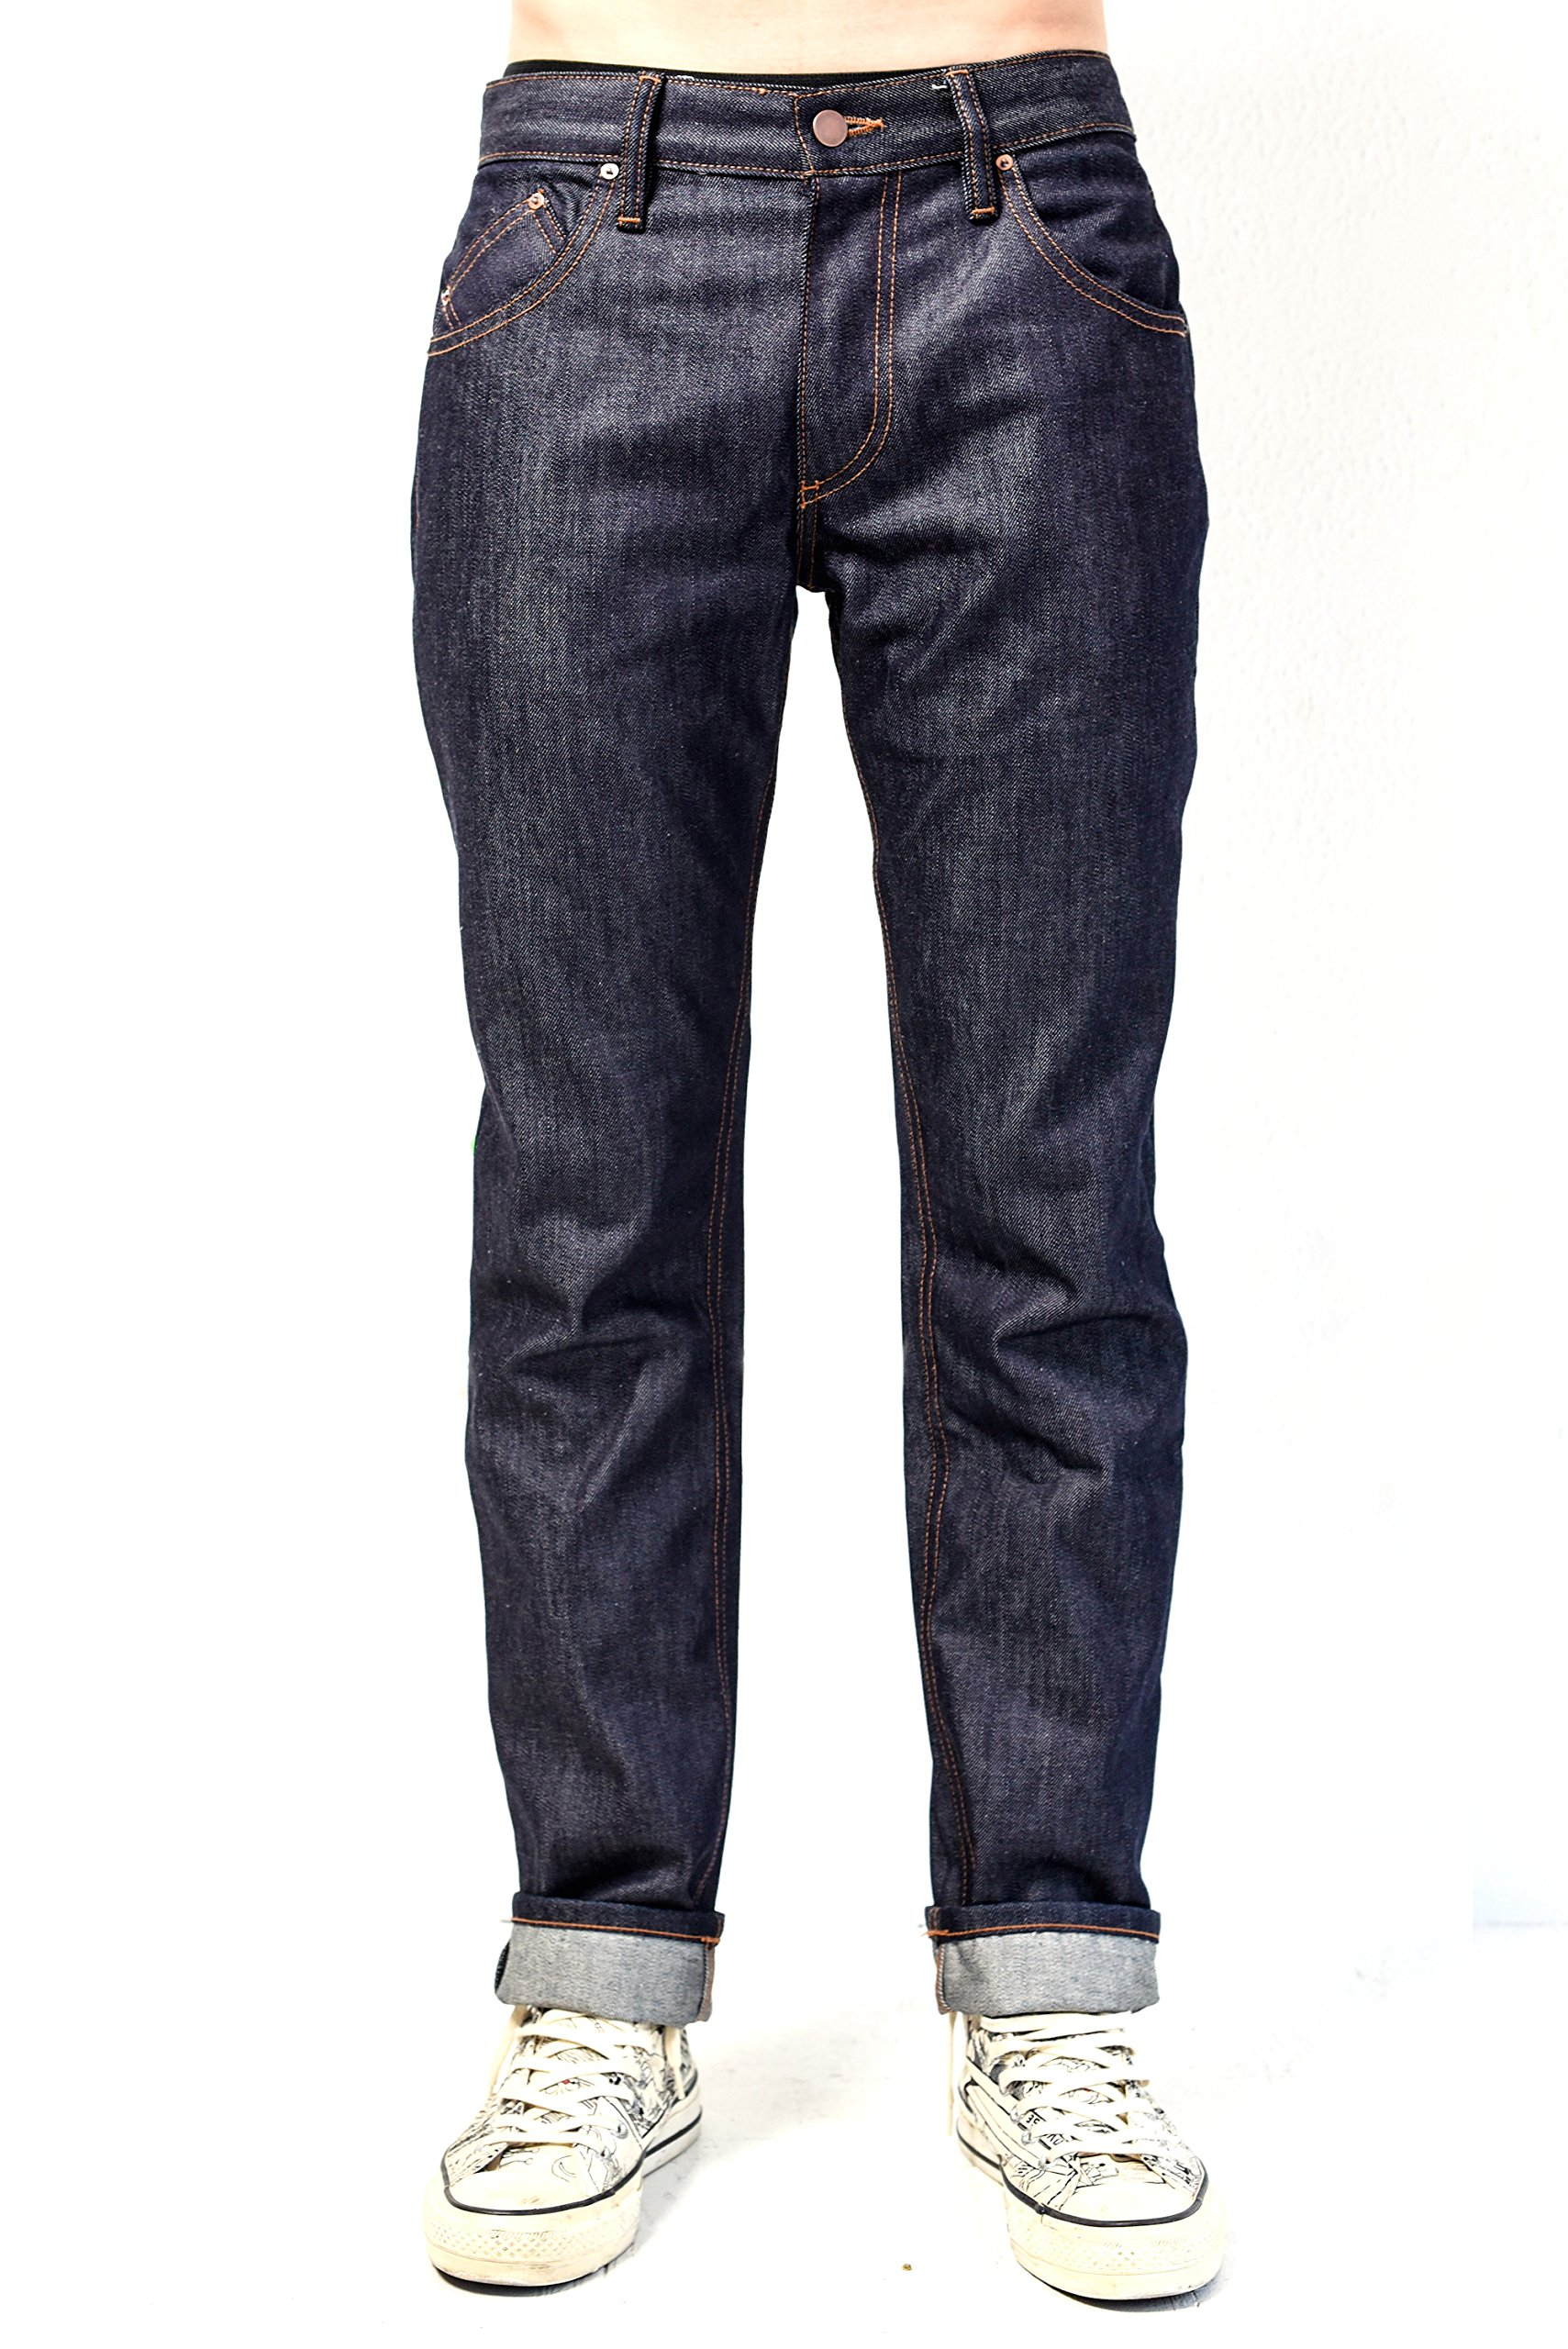 SOURCE Denim Ethical Raw Jeans (Men's)